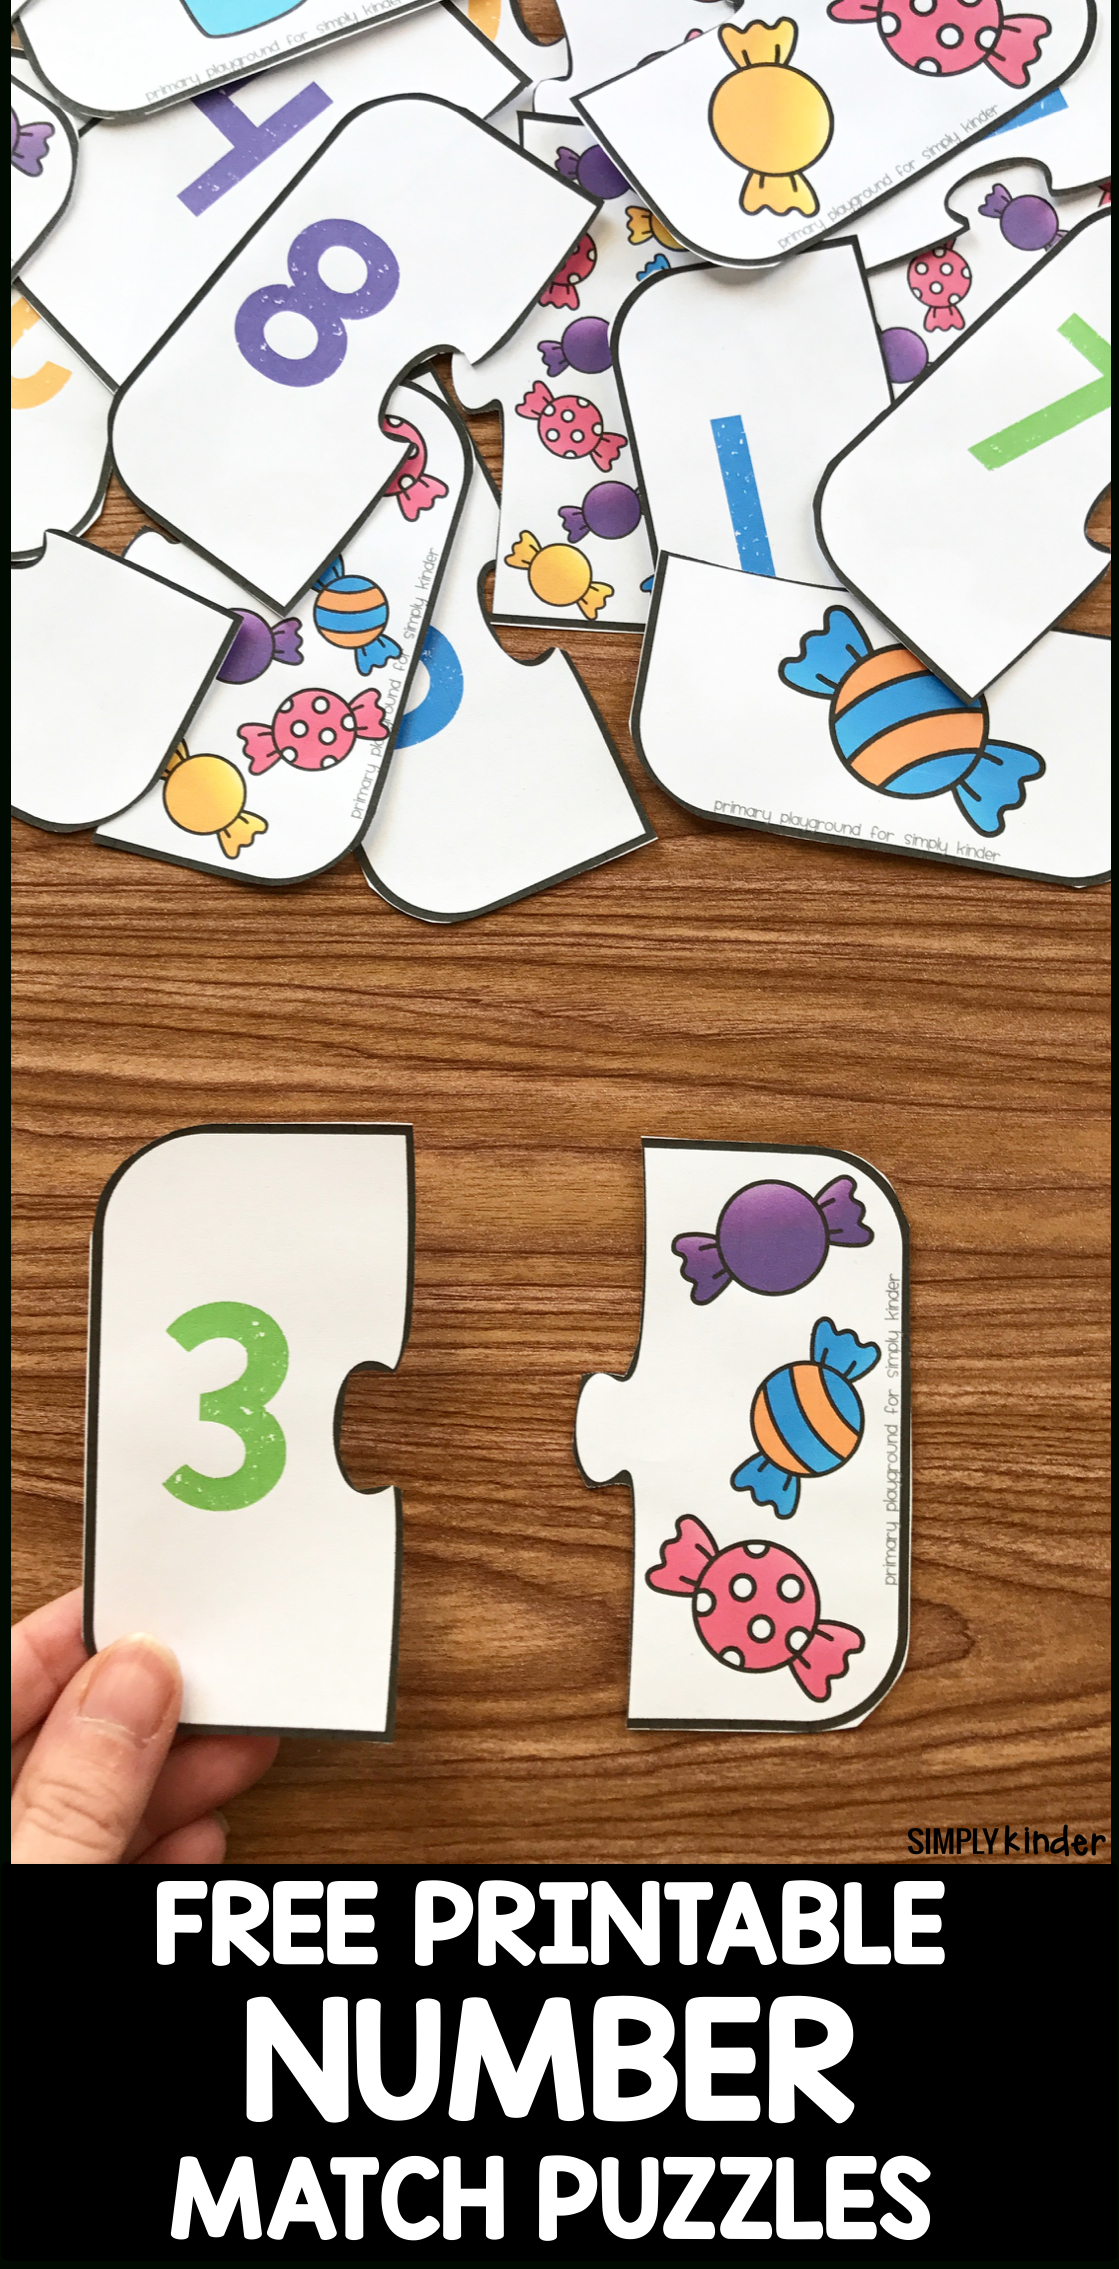 Free Printable Number Match Puzzles | Numbers | Simply Kinder, Free - Printable Number Puzzles For Kindergarten